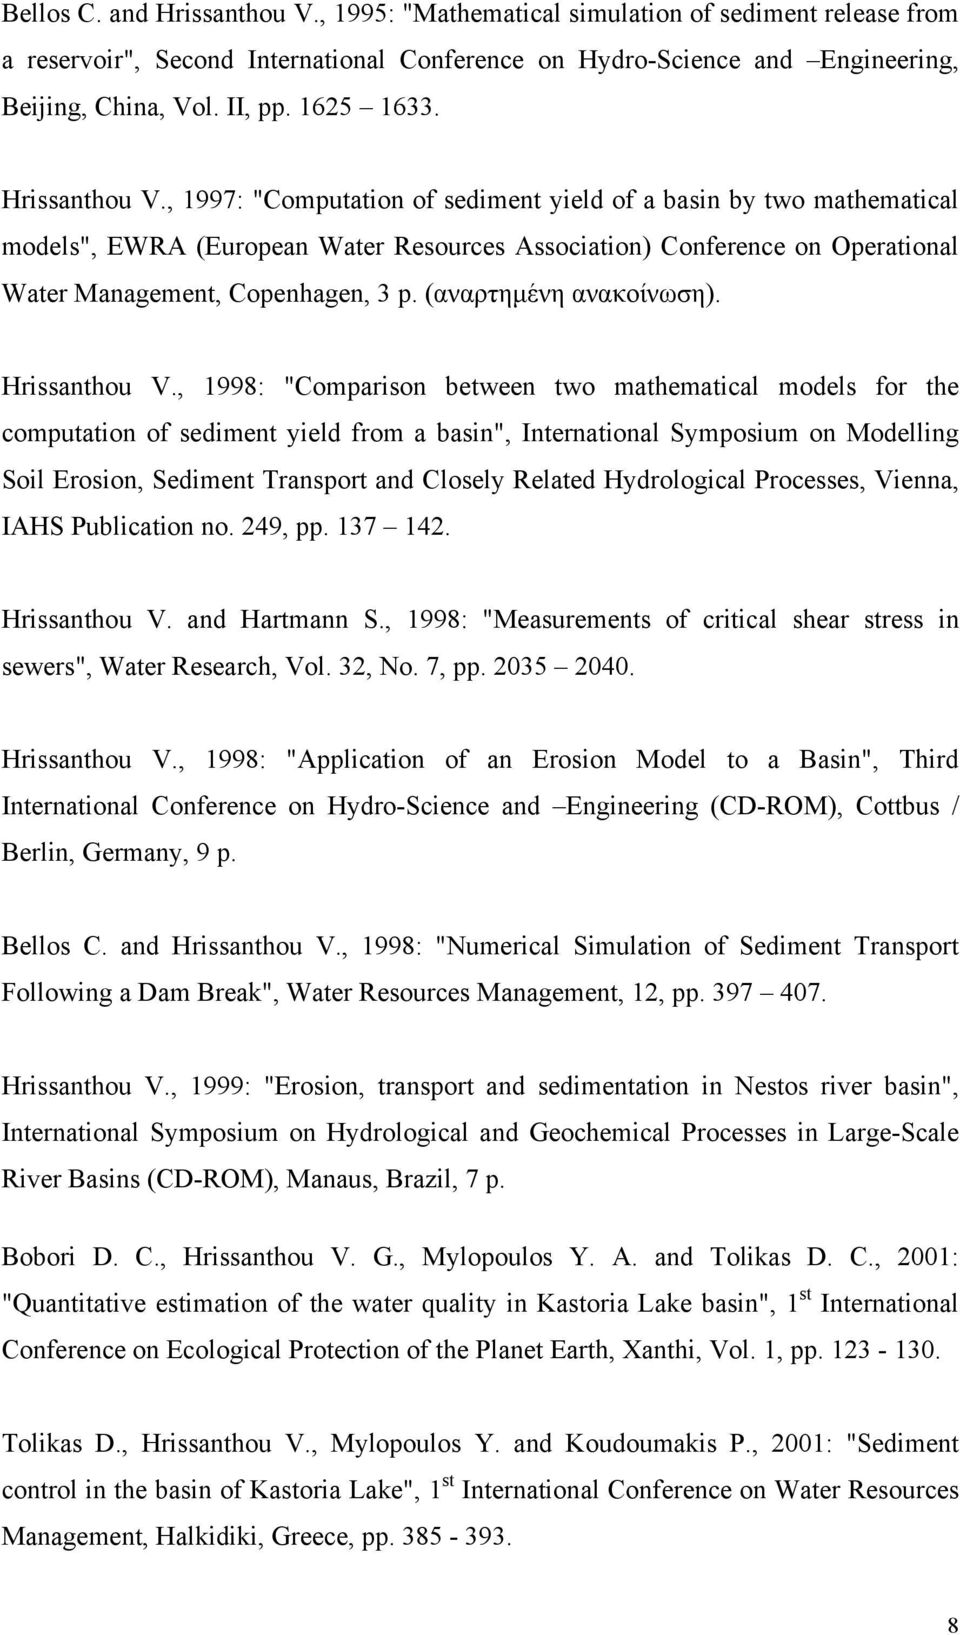 ", 1997: ""Computation of sediment yield of a basin by two mathematical models"", EWRA (European Water Resources Association) Conference on Operational Water Management, Copenhagen, 3 p."